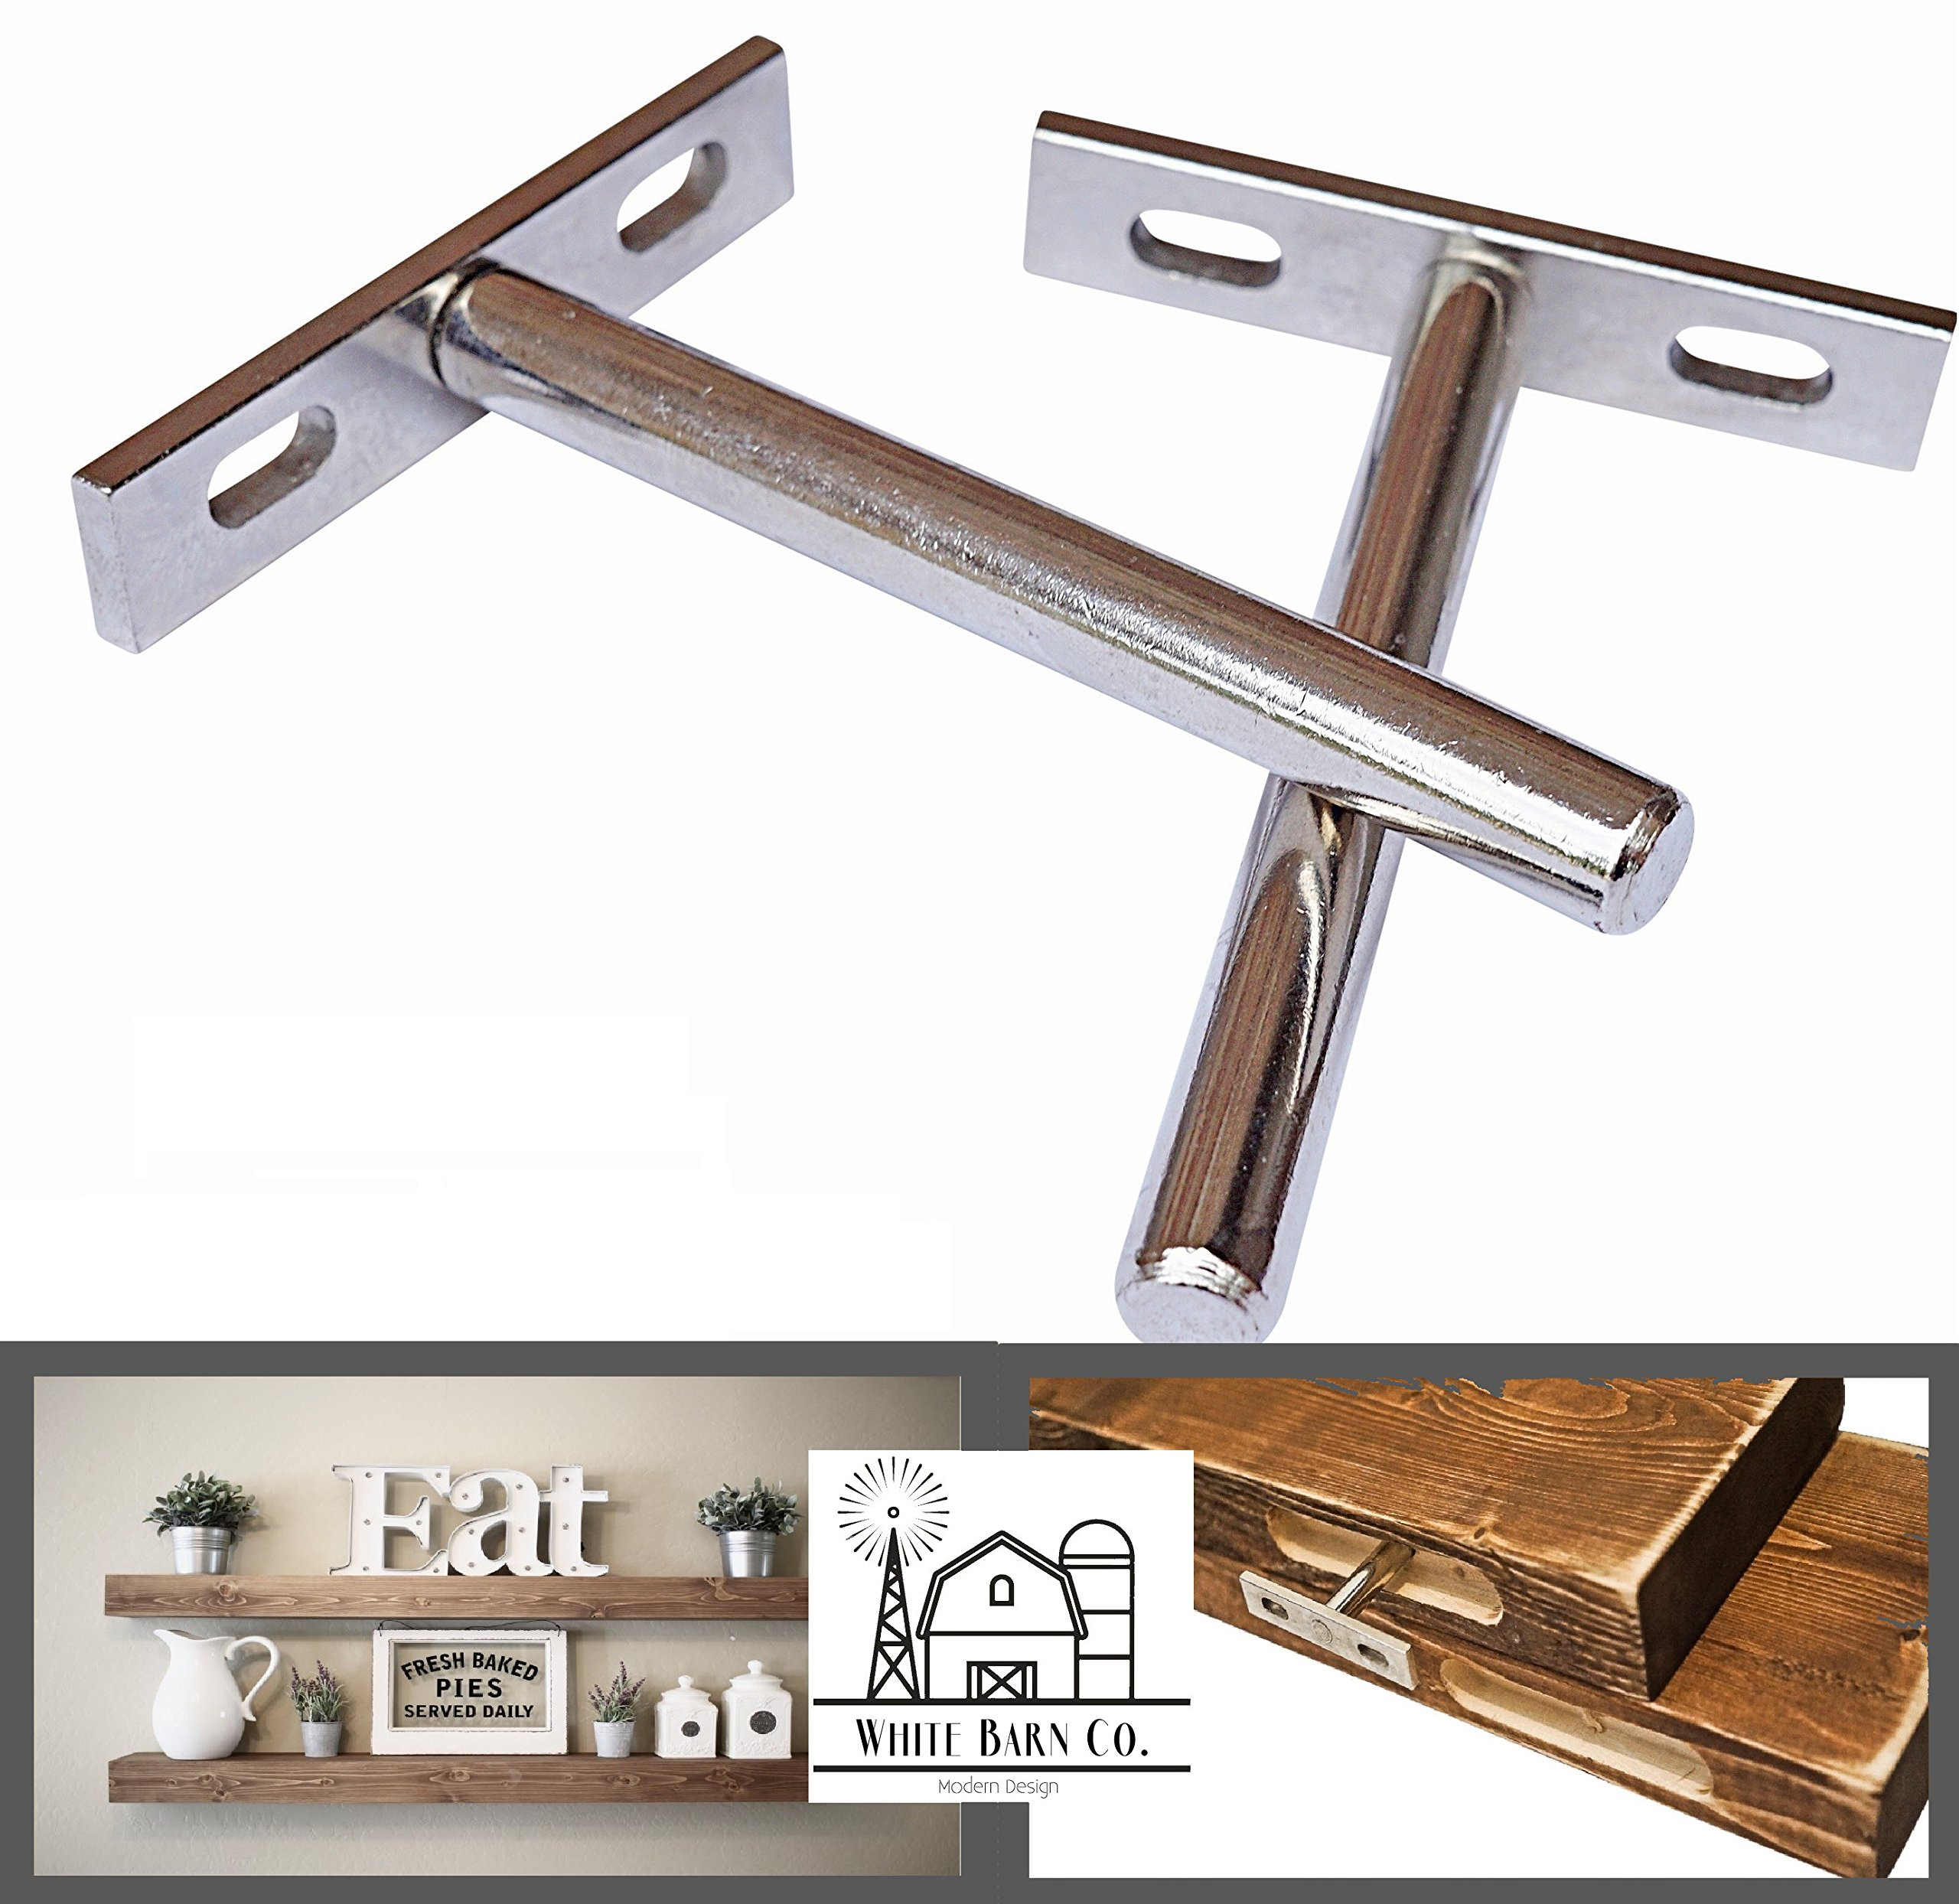 2 INVISIBLE FLOATING SHELF BRACKETS - COMPLETELY HIDDEN - FLUSH MOUNT - LOW PROFILE - Invisible supports for any type of shelf - Hardened Steel Blind Supports 5-8'' width shelves 30lbs - (4'')